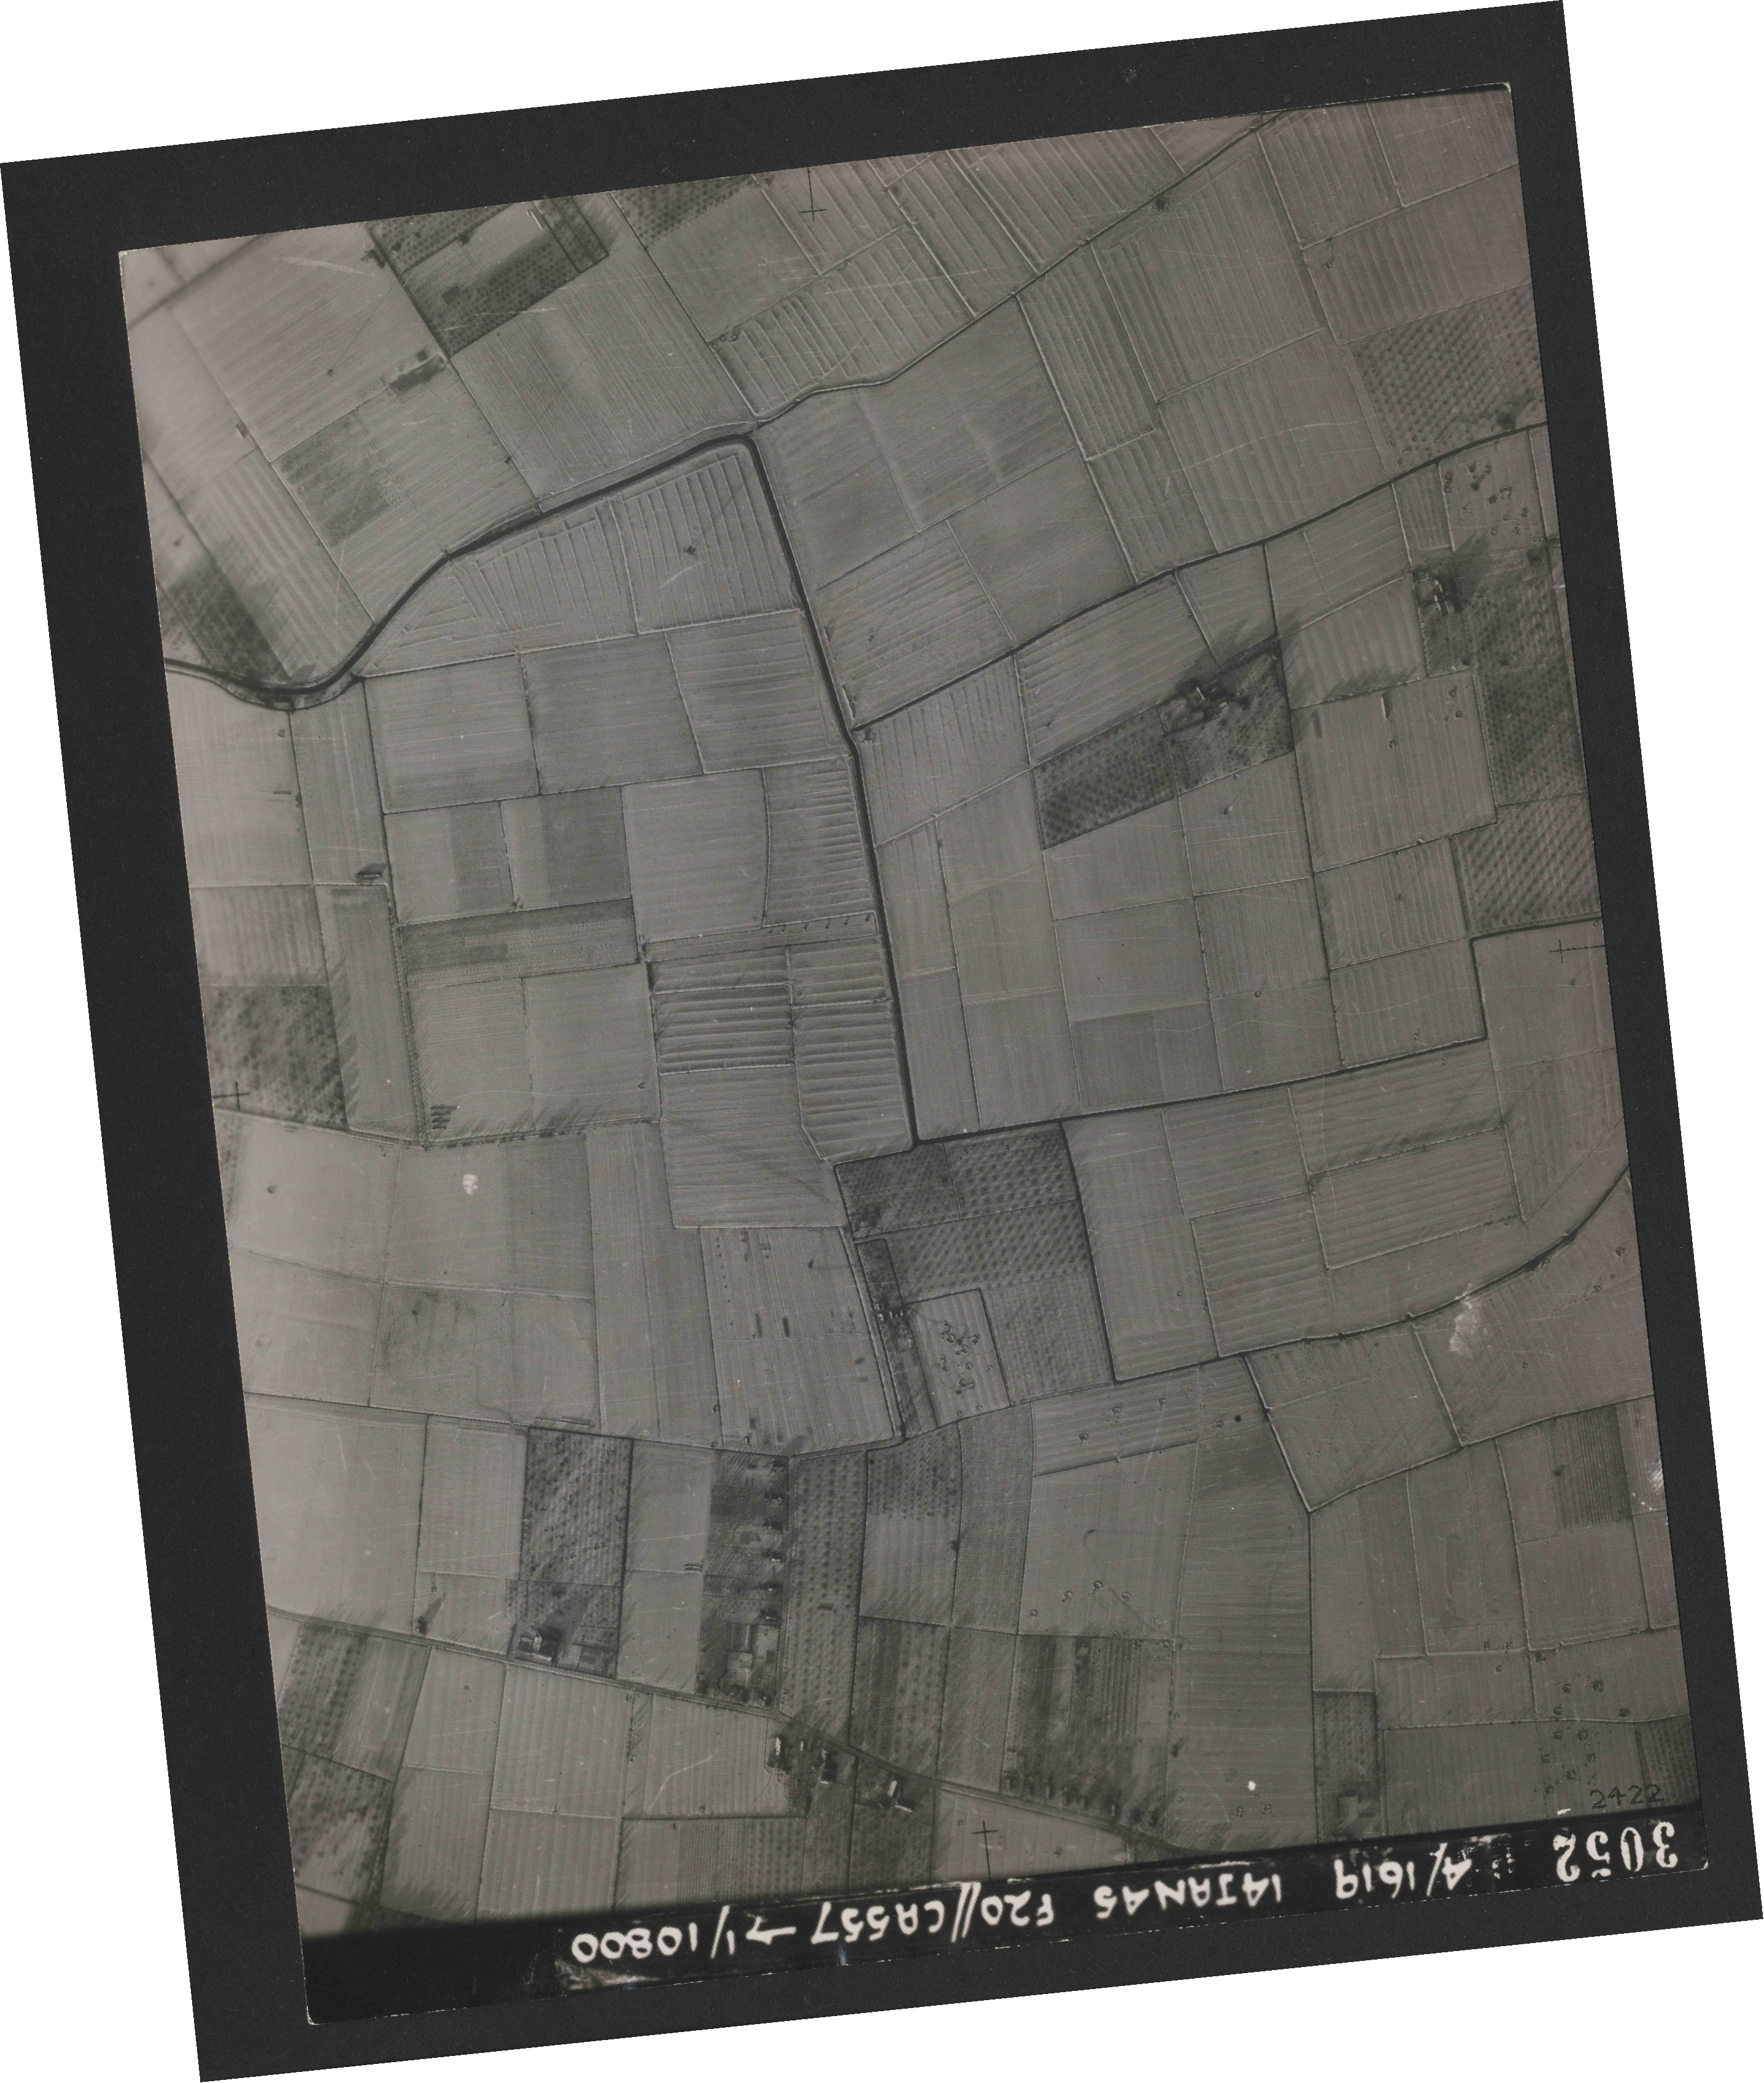 Collection RAF aerial photos 1940-1945 - flight 291, run 04, photo 3052